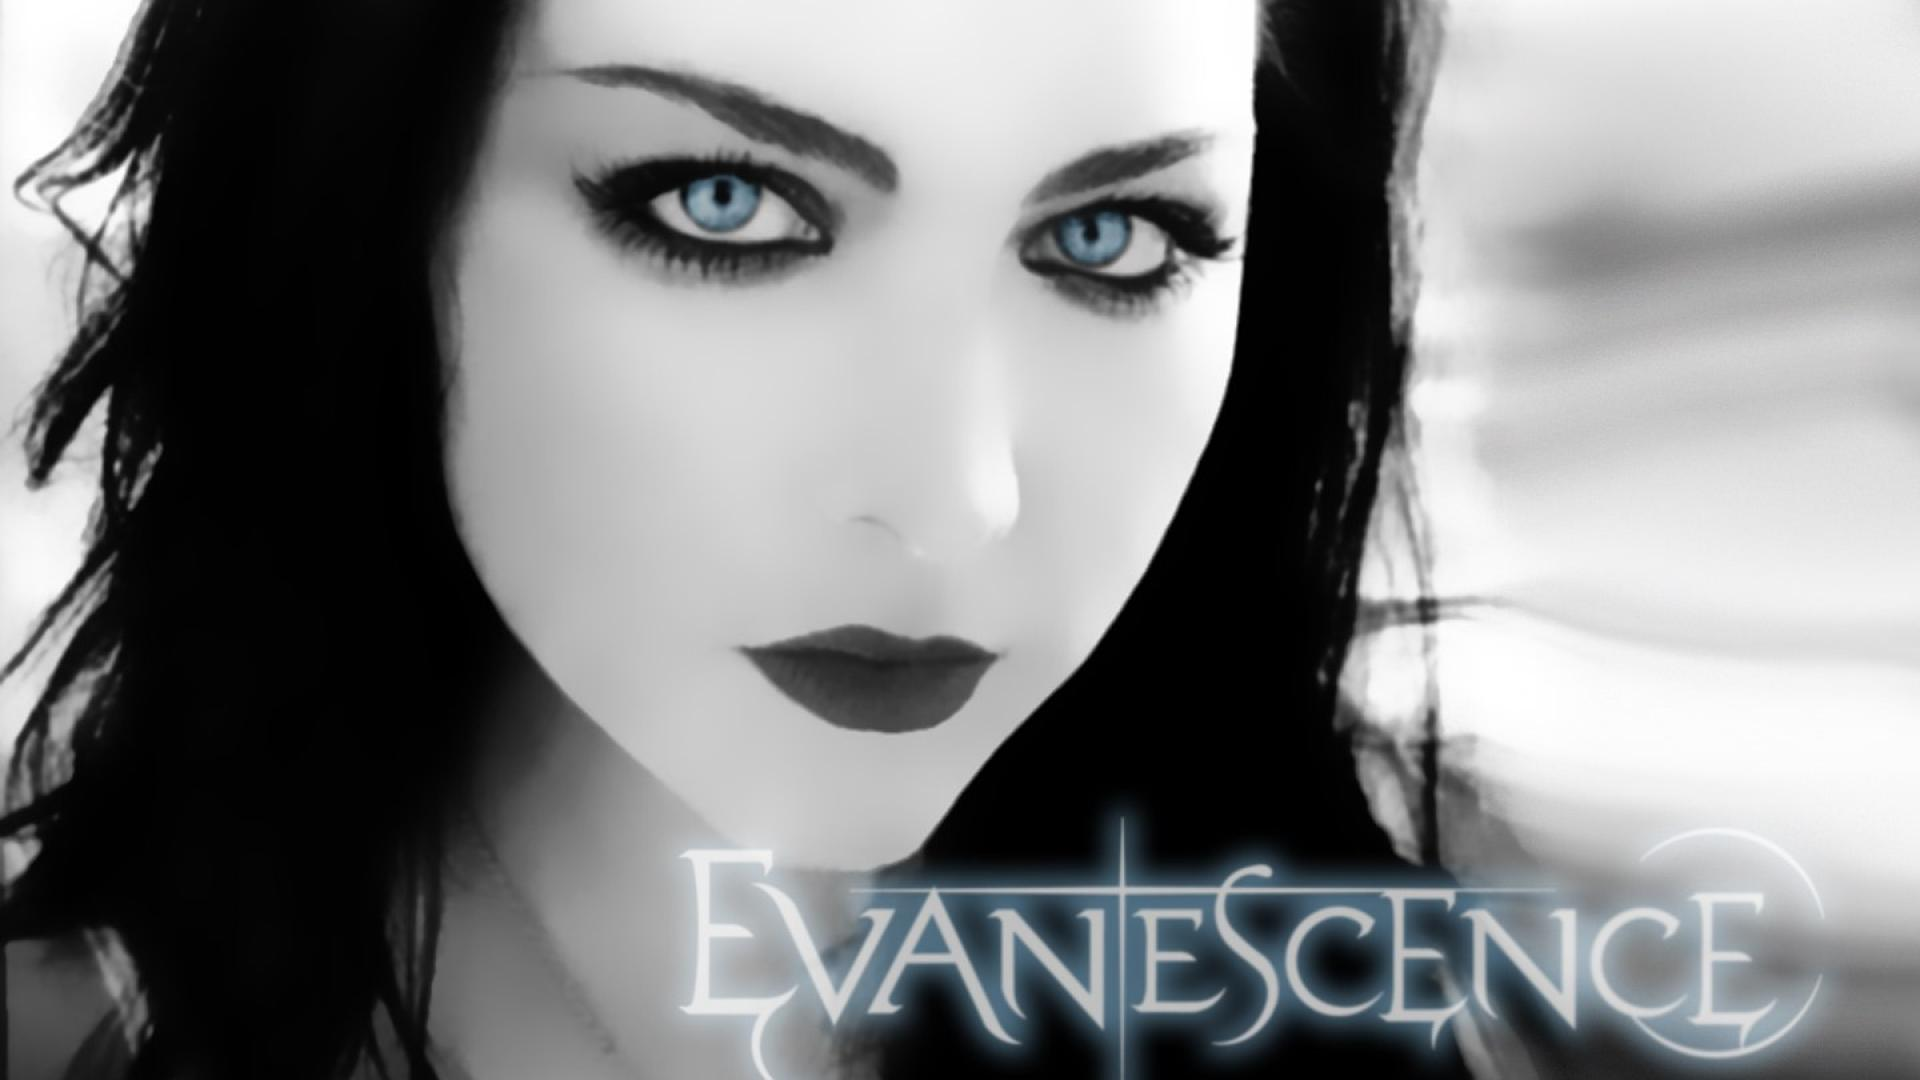 download wallpaper 1920x1080 evanescence - photo #7